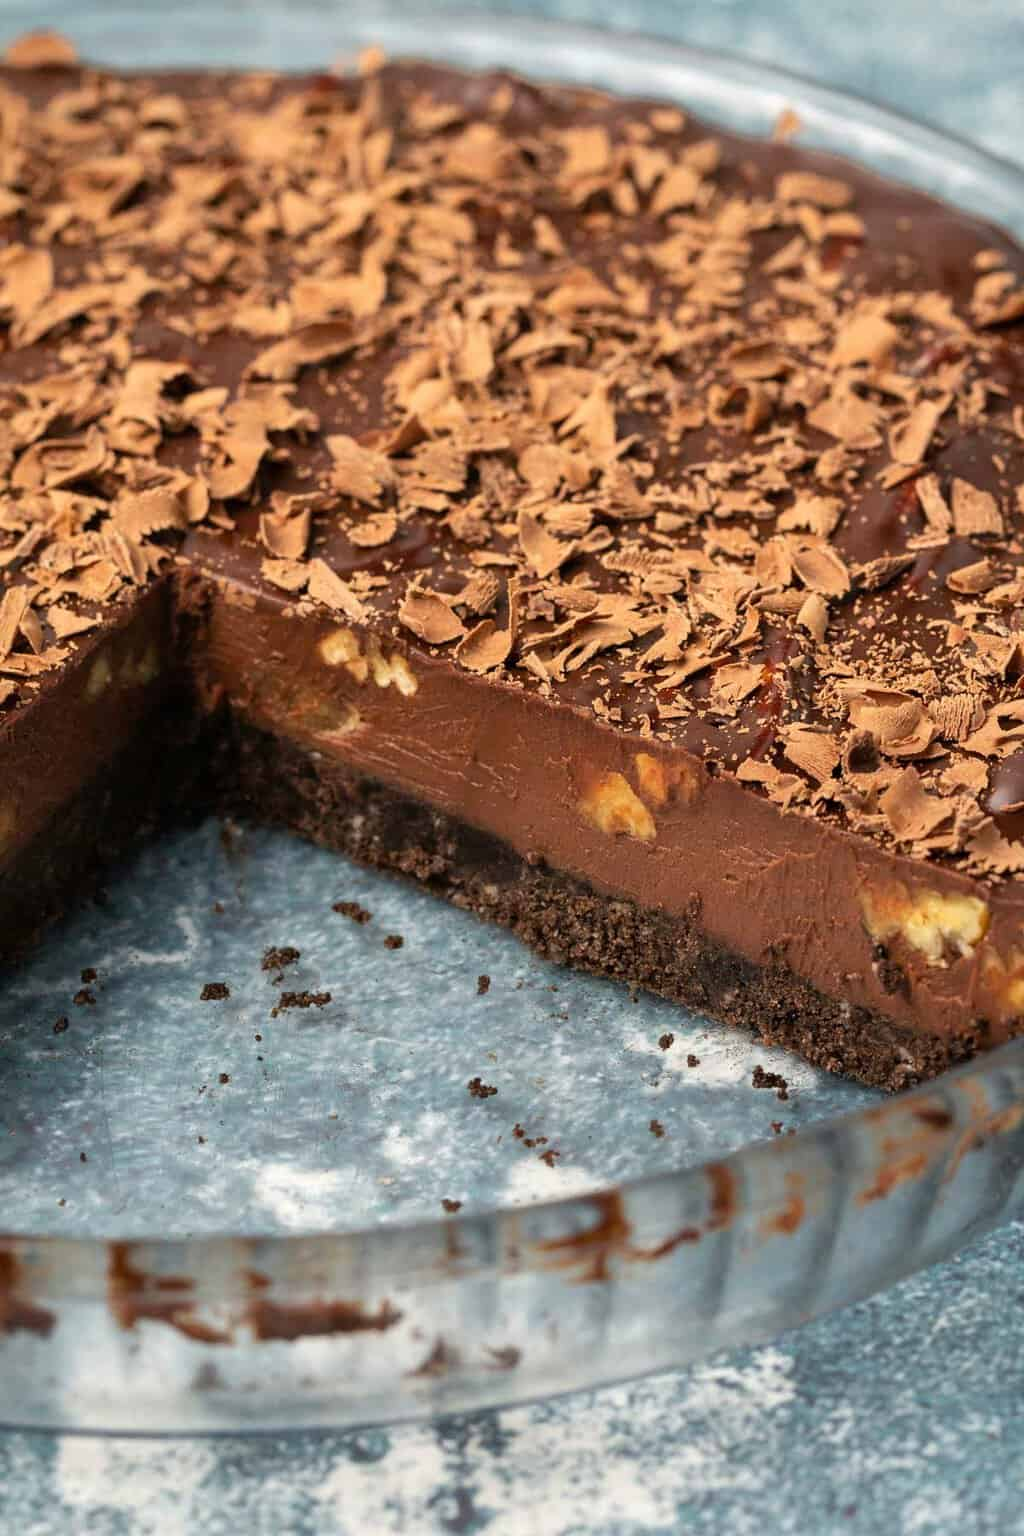 Vegan chocolate tart in a glass pie dish with one slice removed.